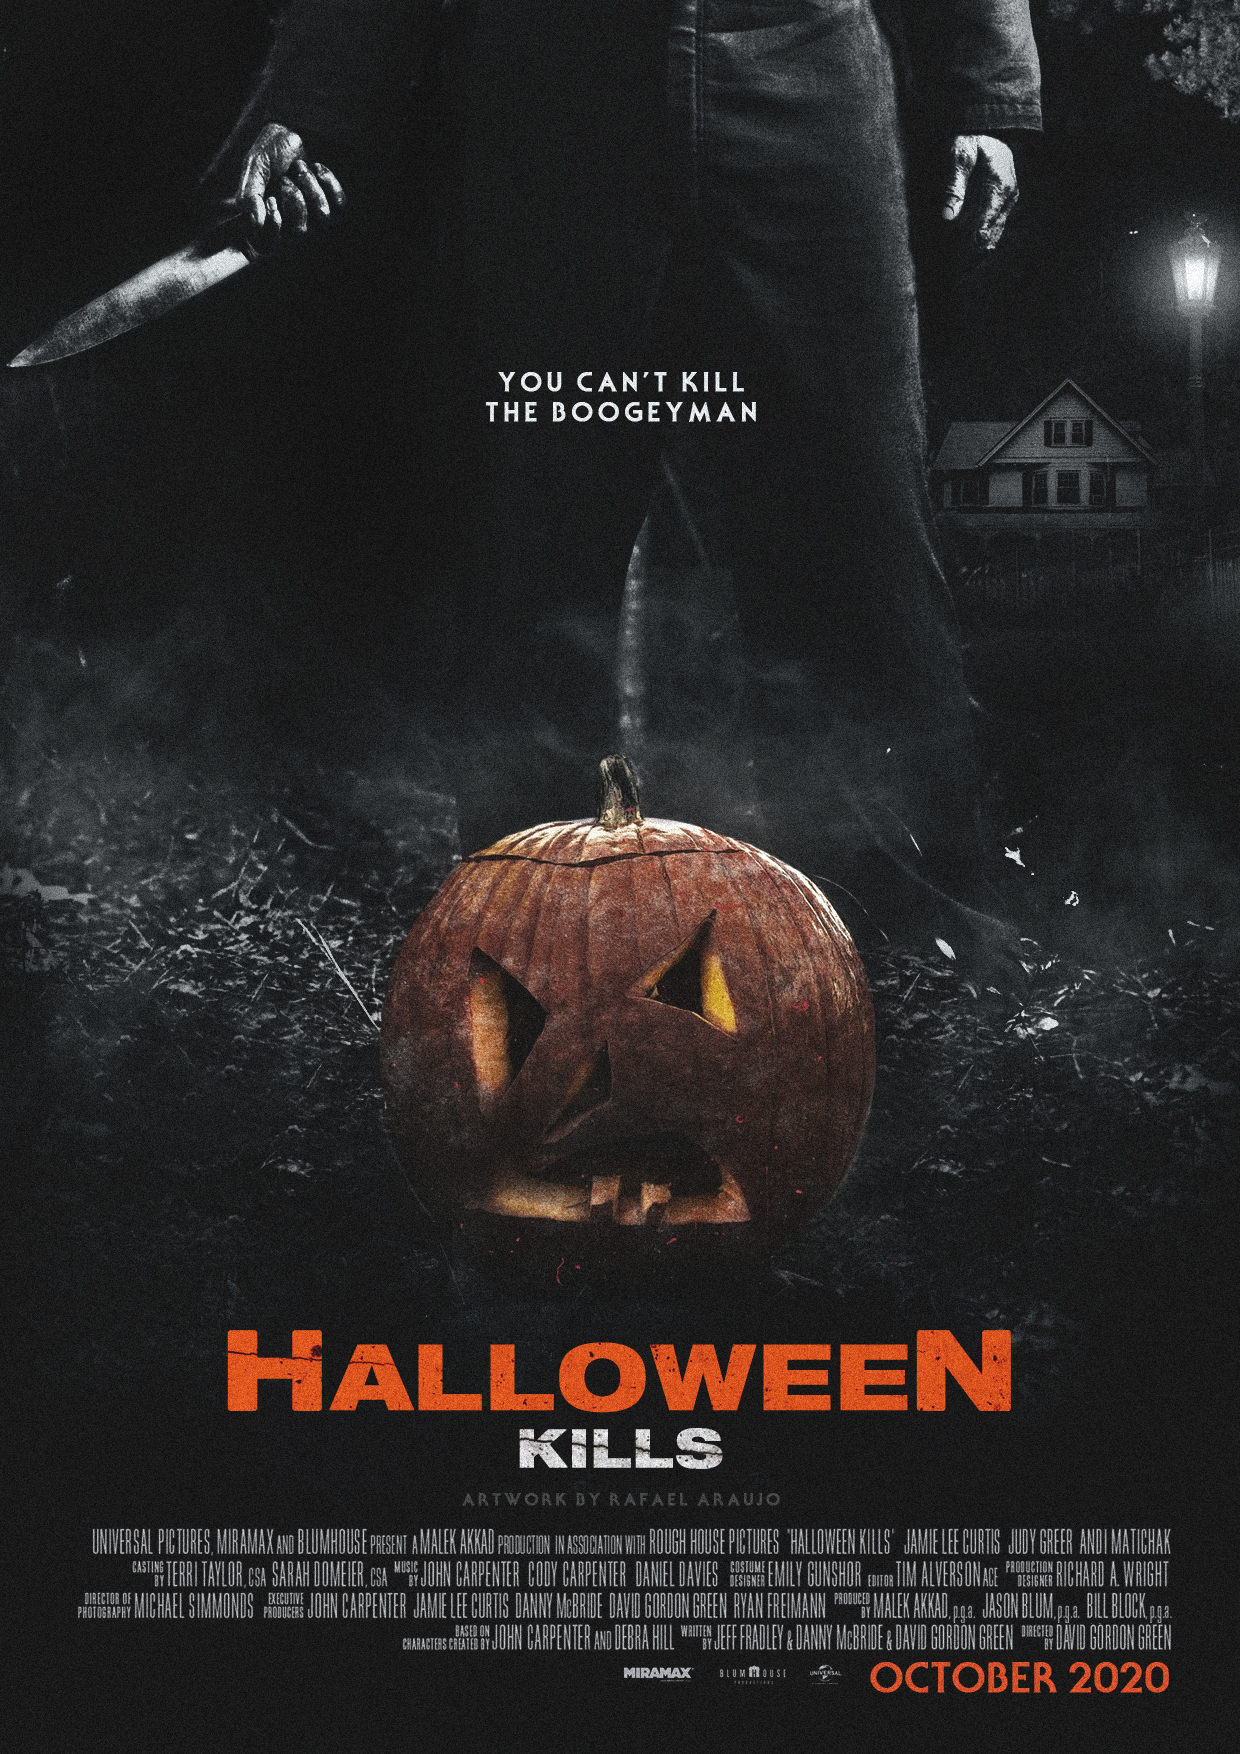 Halloween 2020 Teaser Poster Halloween Kills (2020) Teaser Poster by amazing zuckonit on DeviantArt